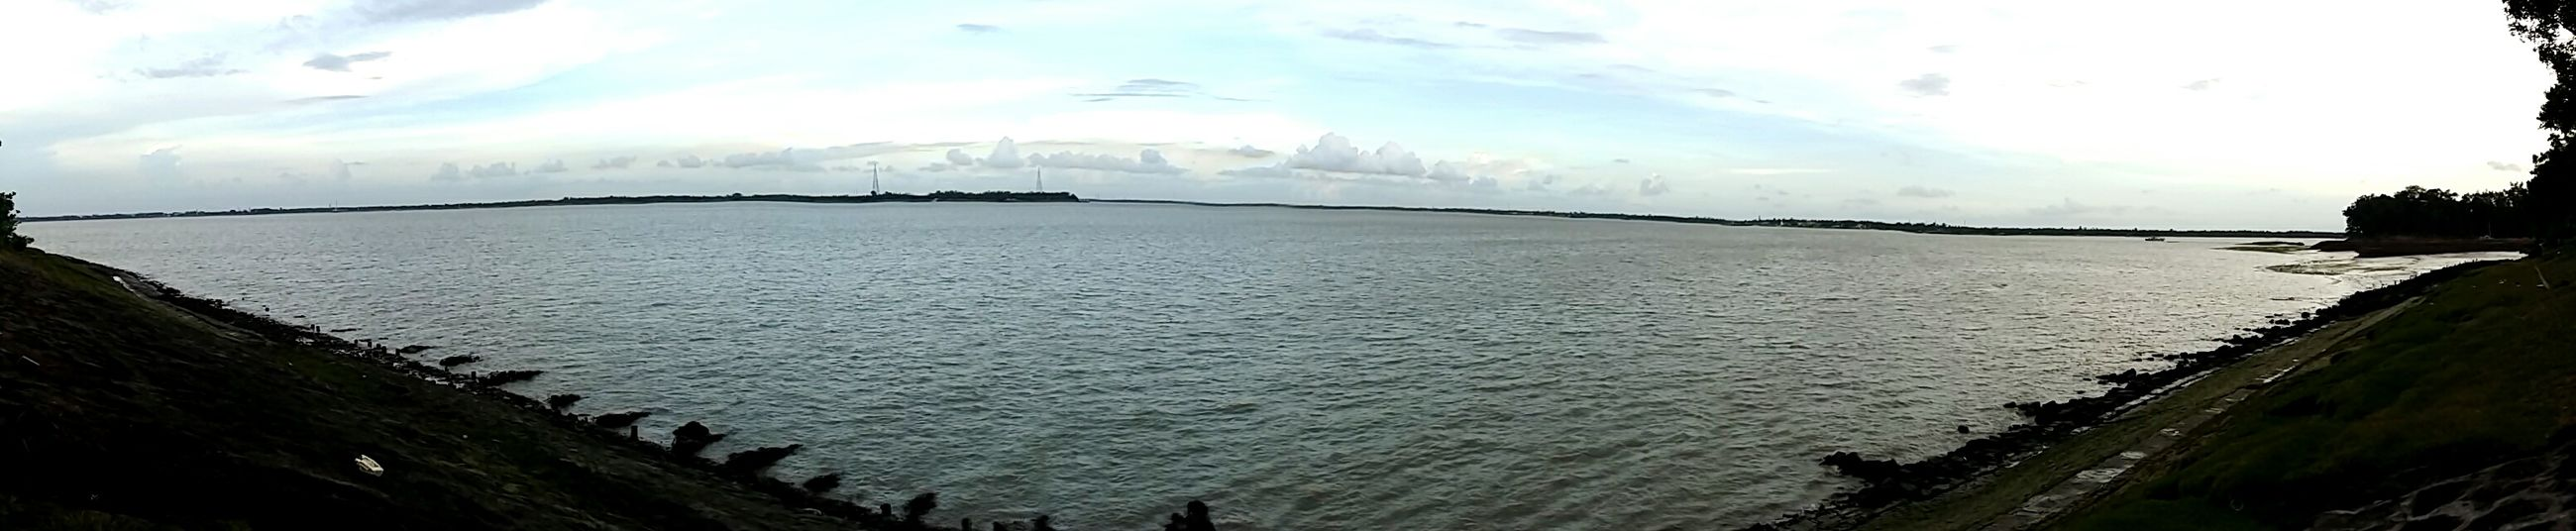 water, sky, sea, cloud - sky, built structure, tranquil scene, tranquility, architecture, scenics, nature, beauty in nature, cloudy, cloud, pier, river, building exterior, day, outdoors, panoramic, no people